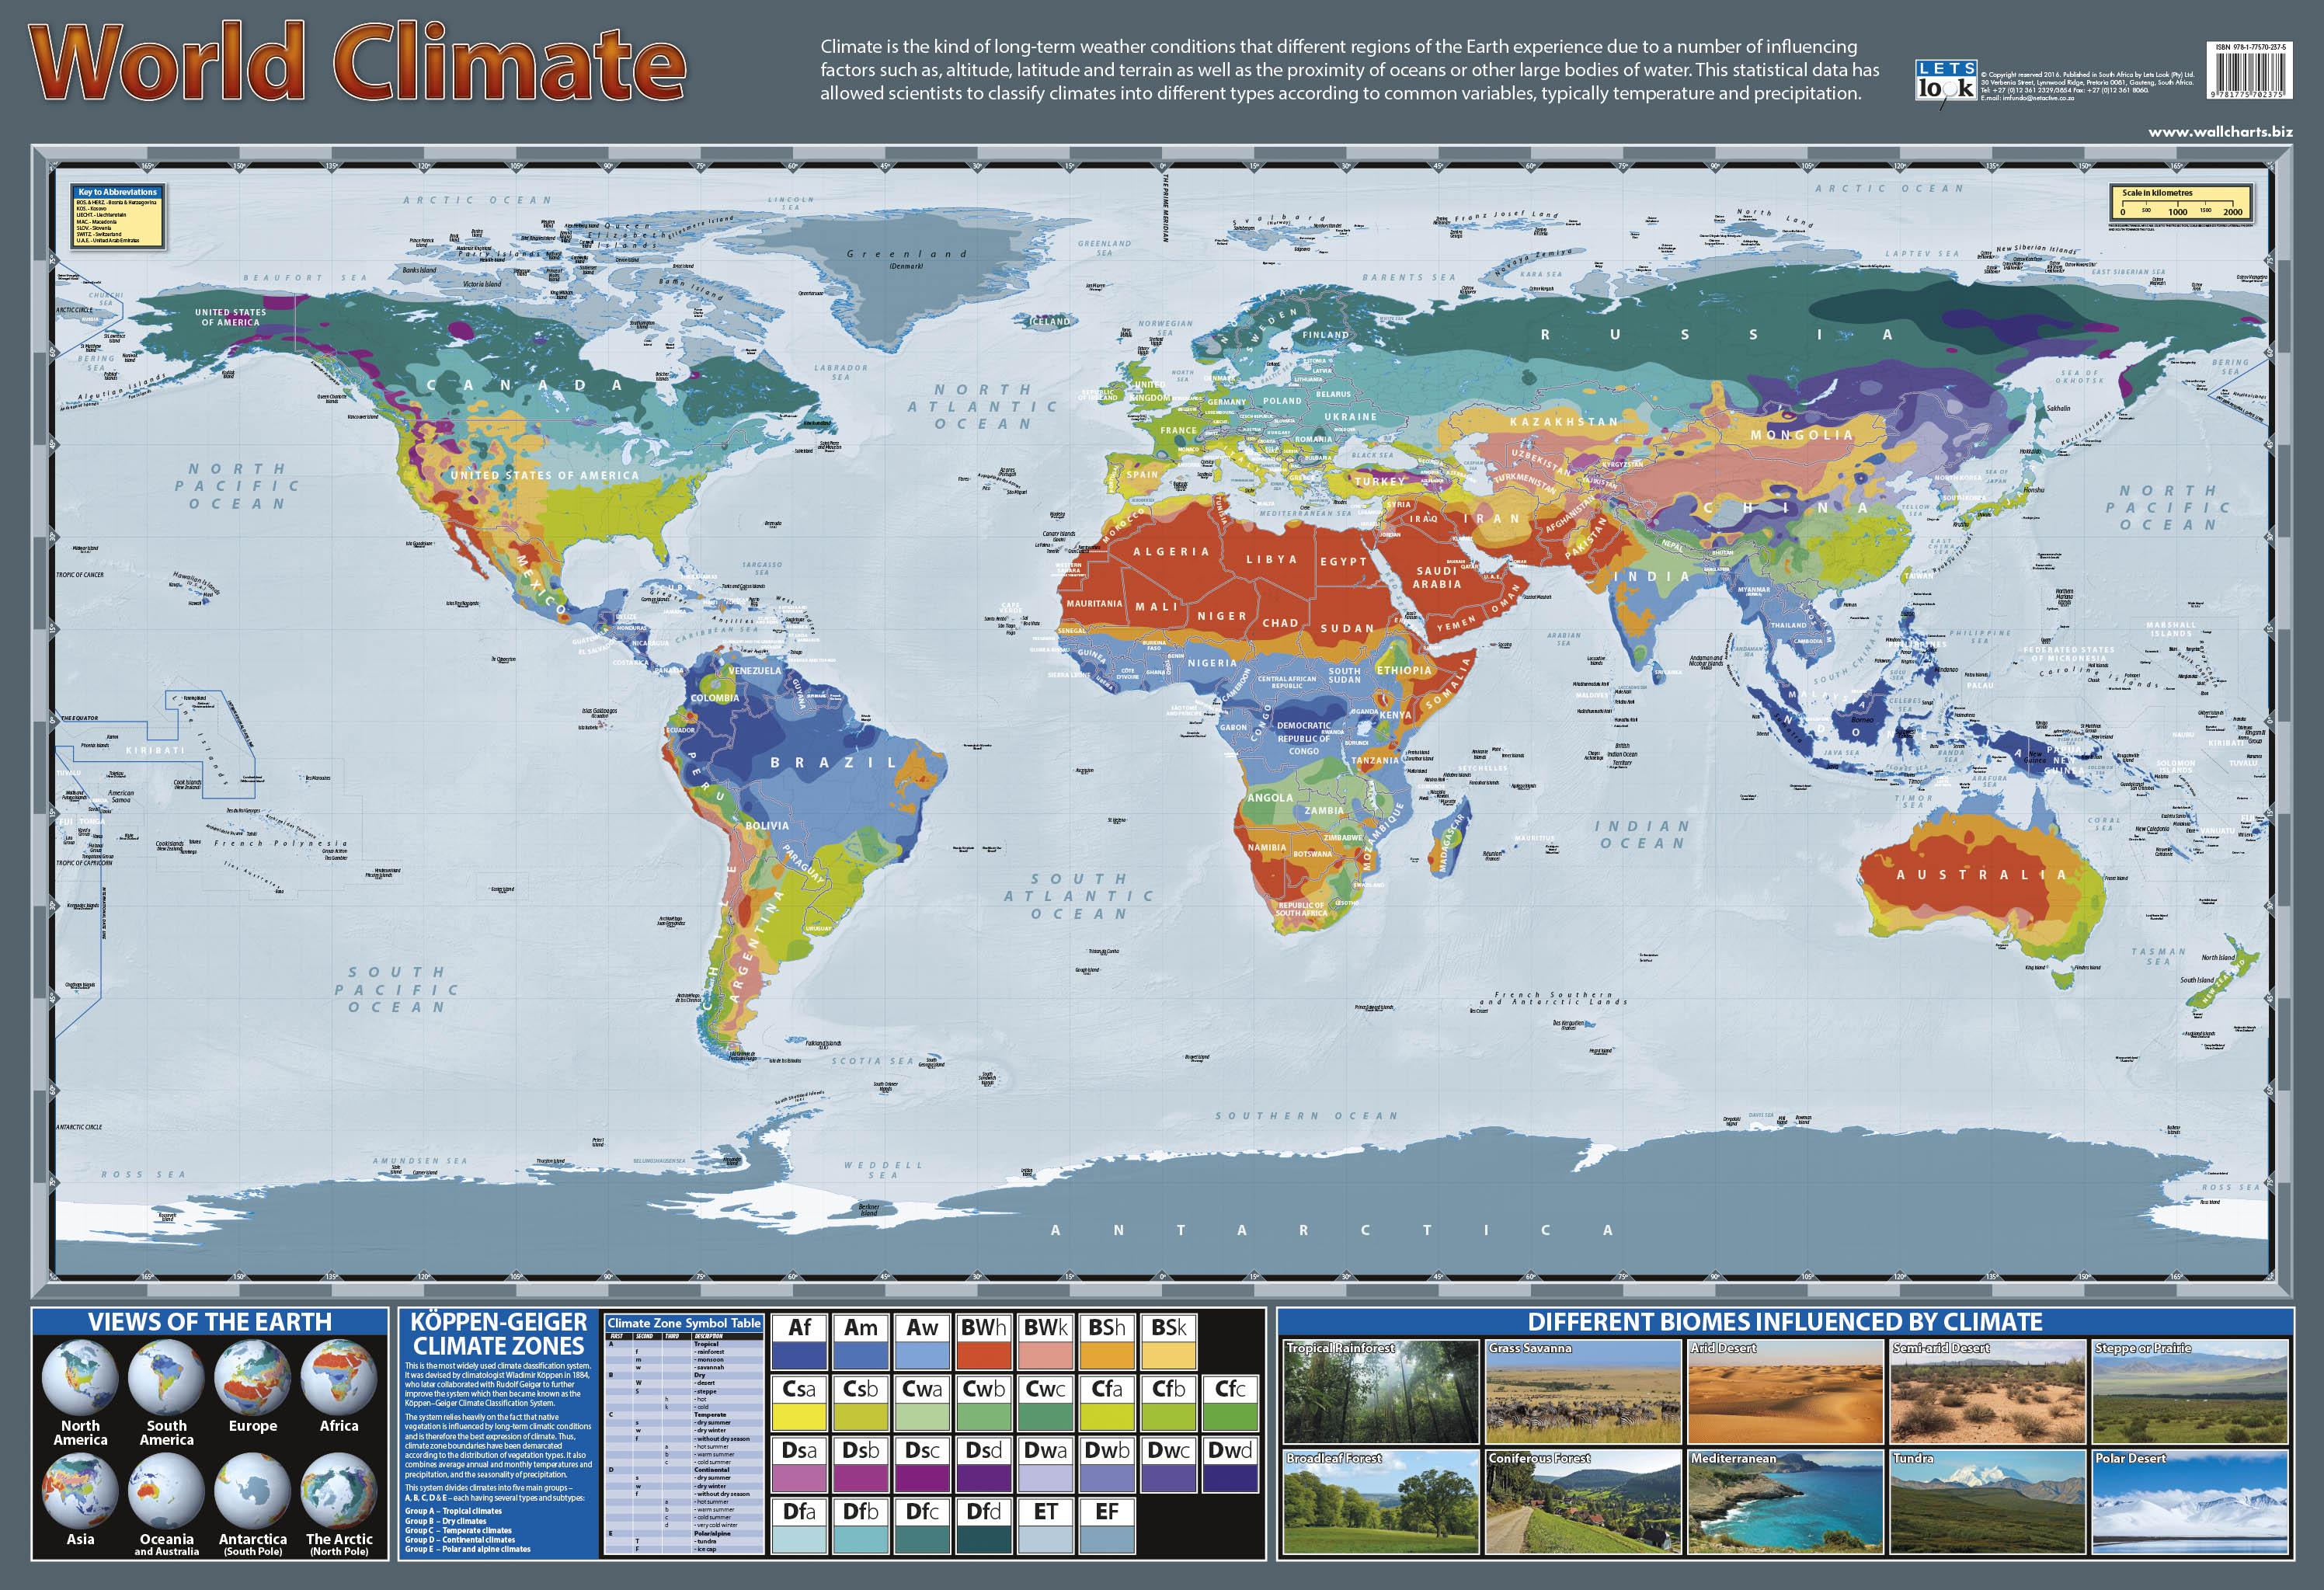 World Climate Zones - Laminated 76cm x 52cm